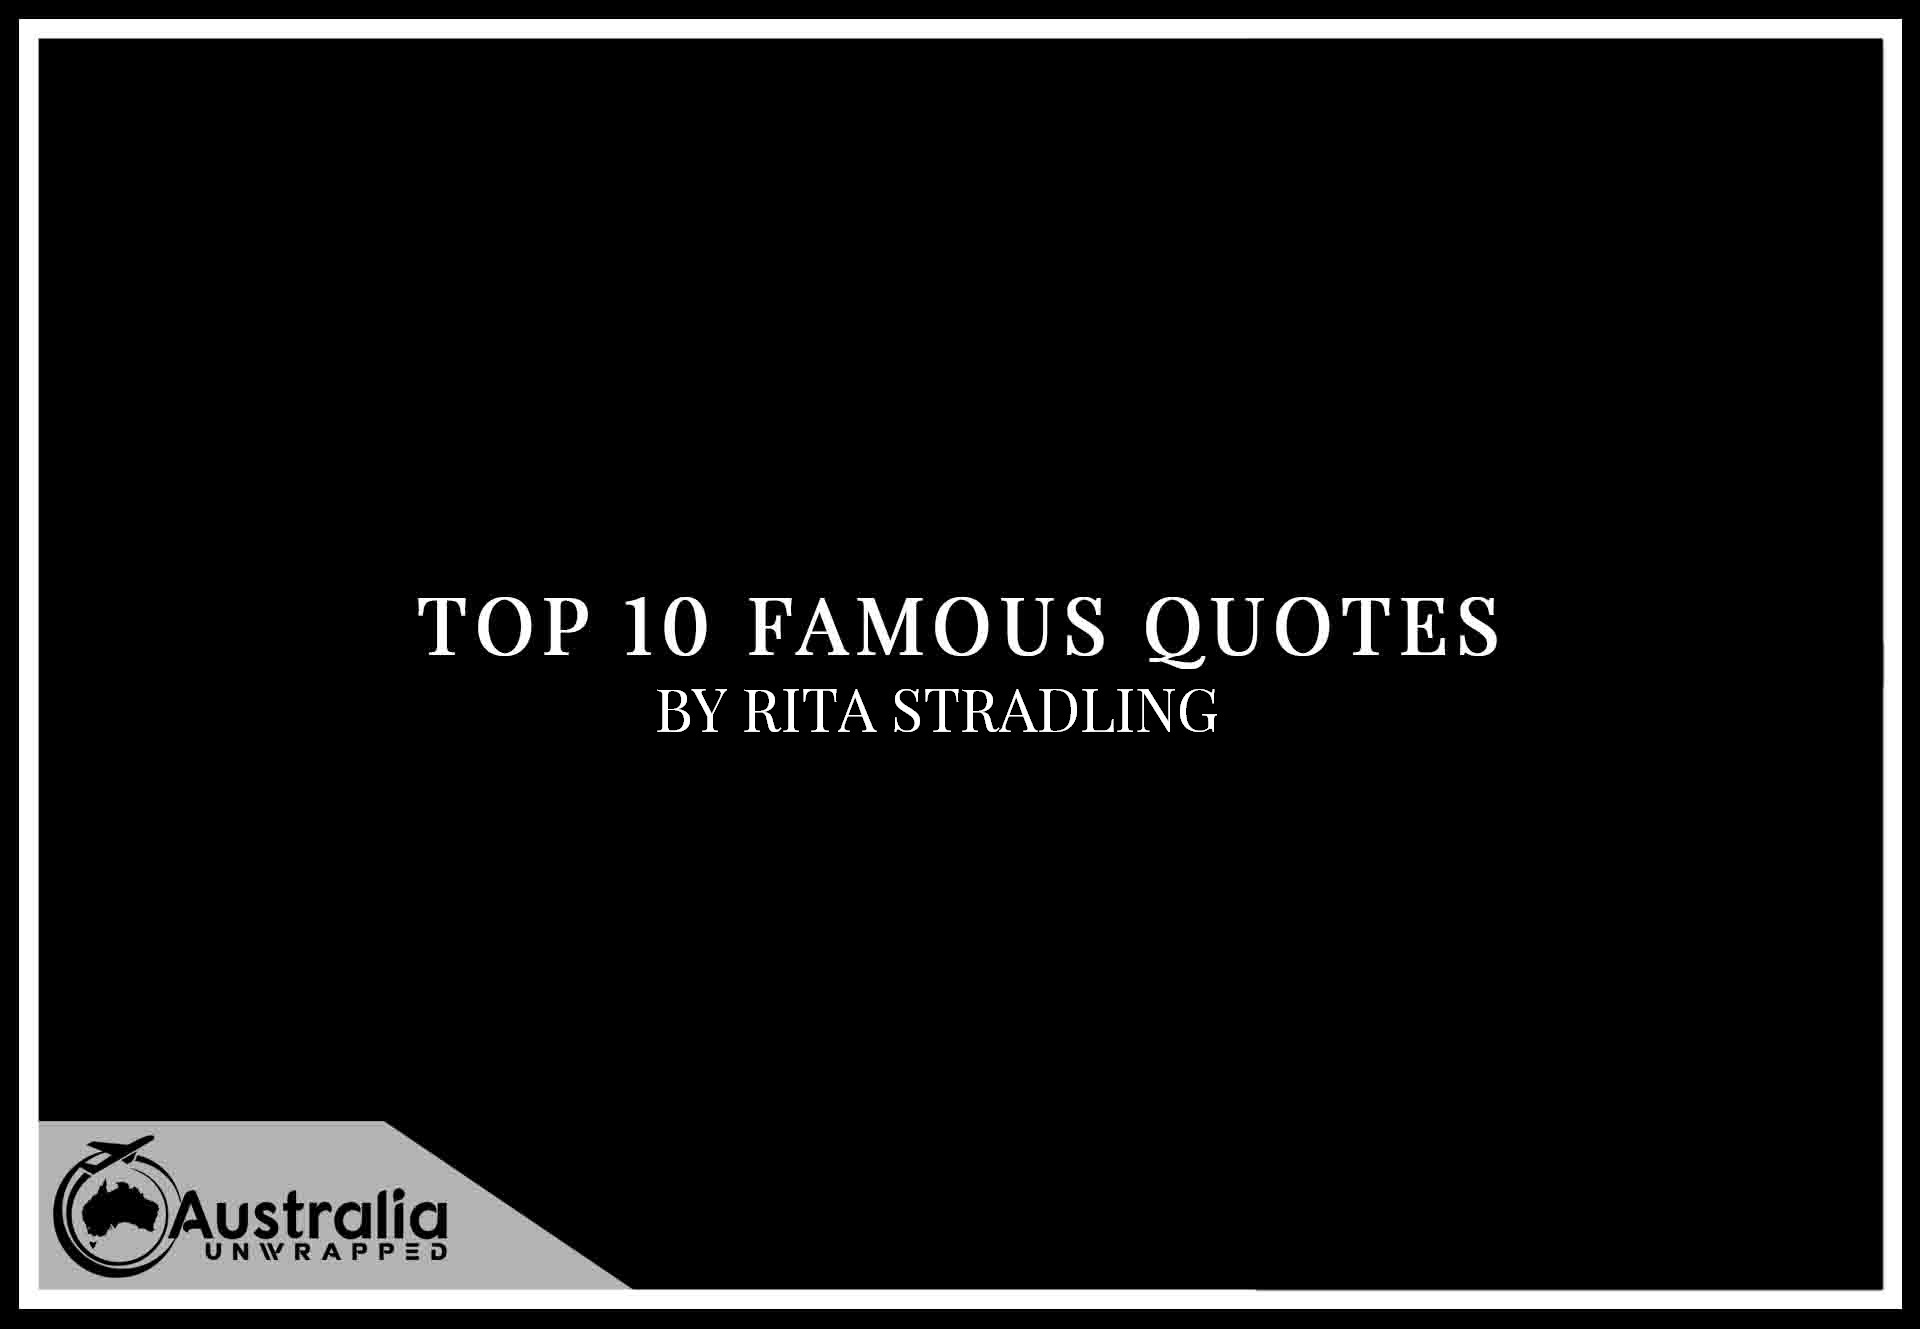 Top 10 Famous Quotes by Author Rita Stradling